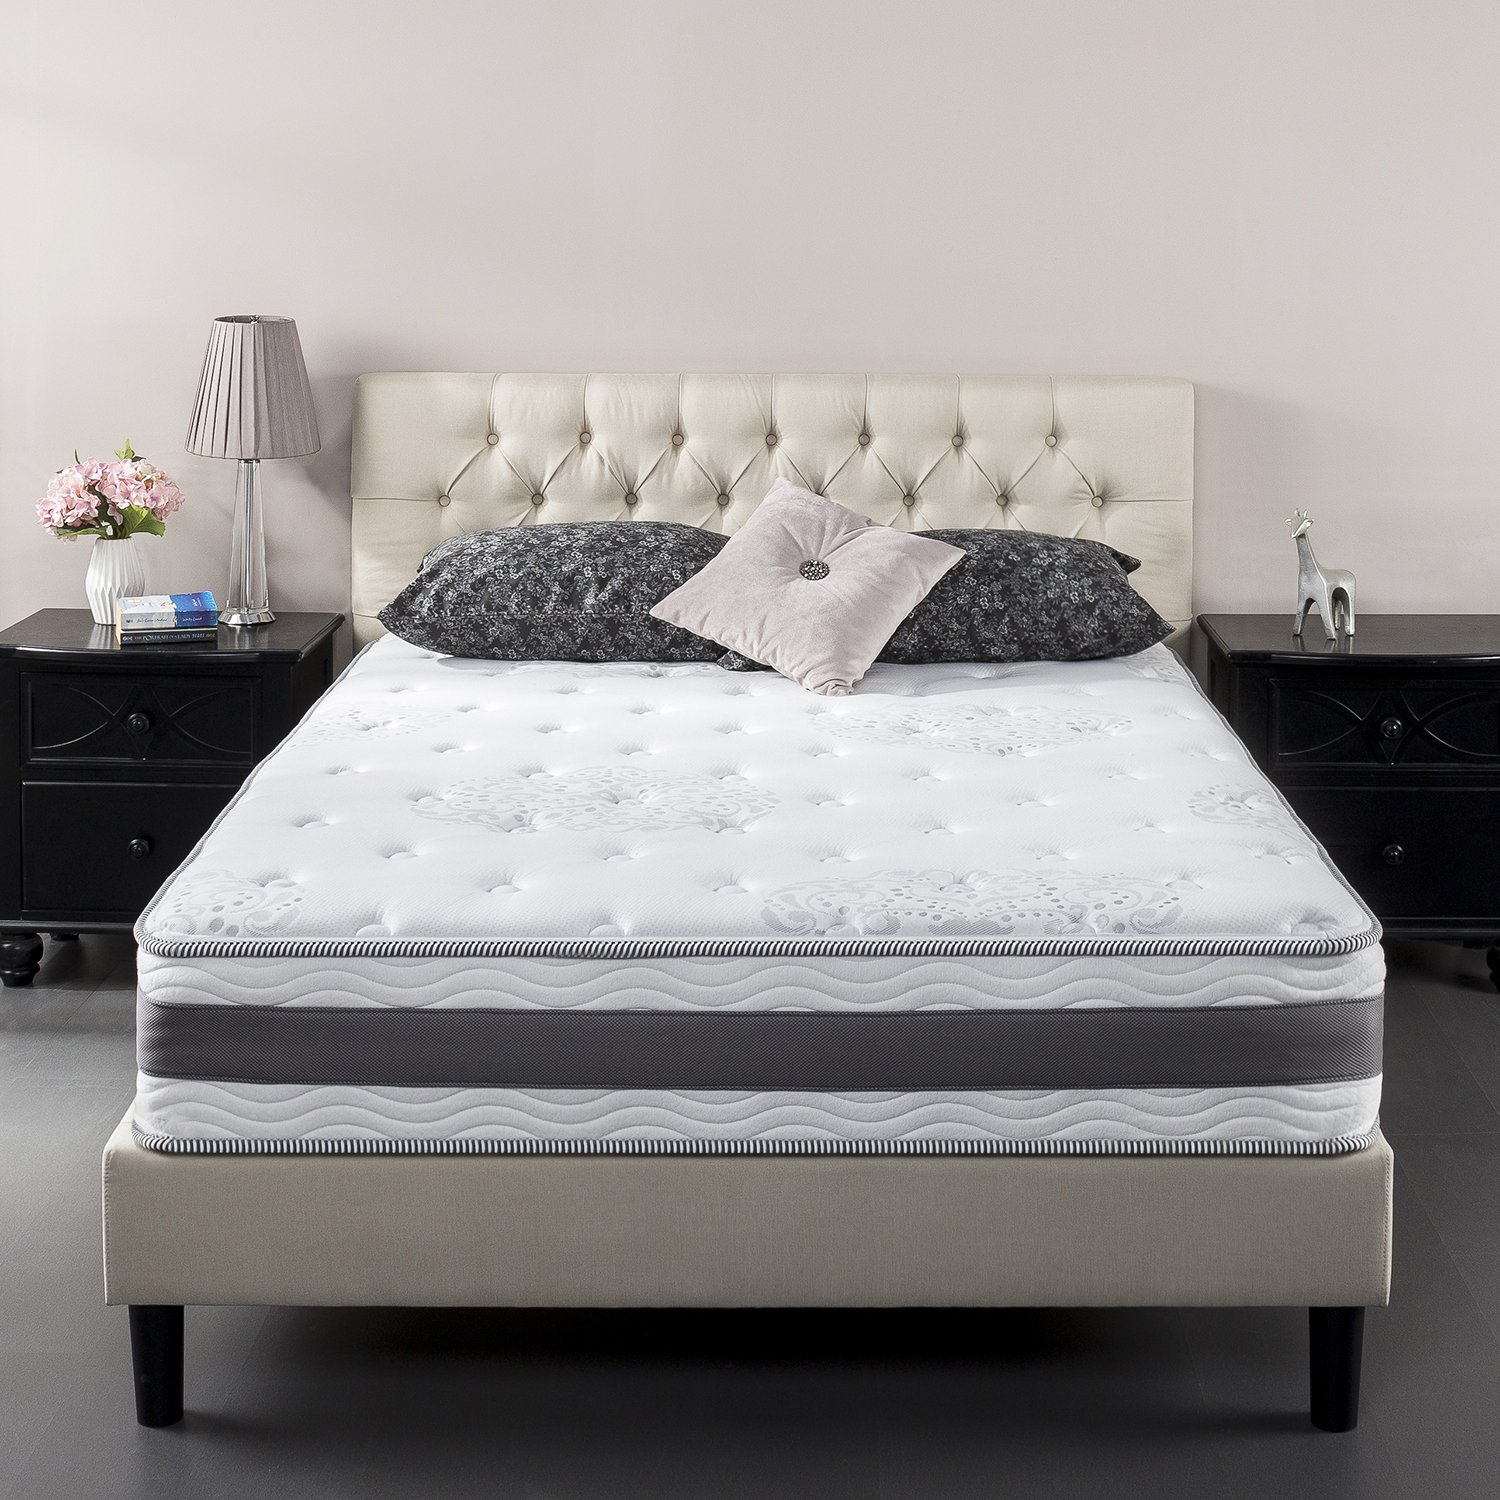 Zinus 10 Inch Gel-Infused Memory Foam Hybrid Mattress, Full